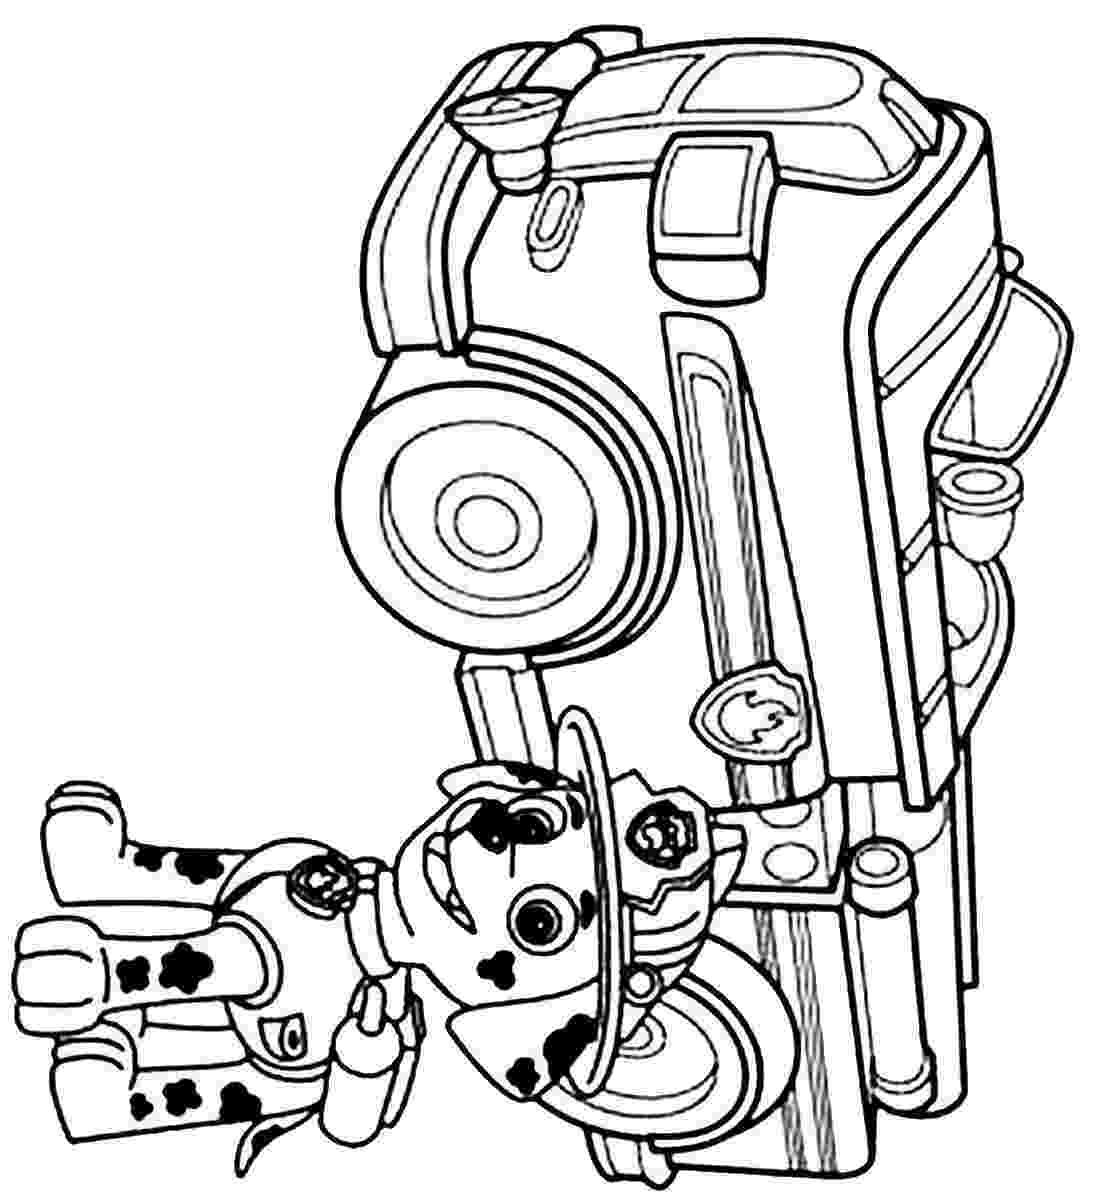 paw patrol coloring pages free top 10 paw patrol coloring pages patrol coloring pages paw free